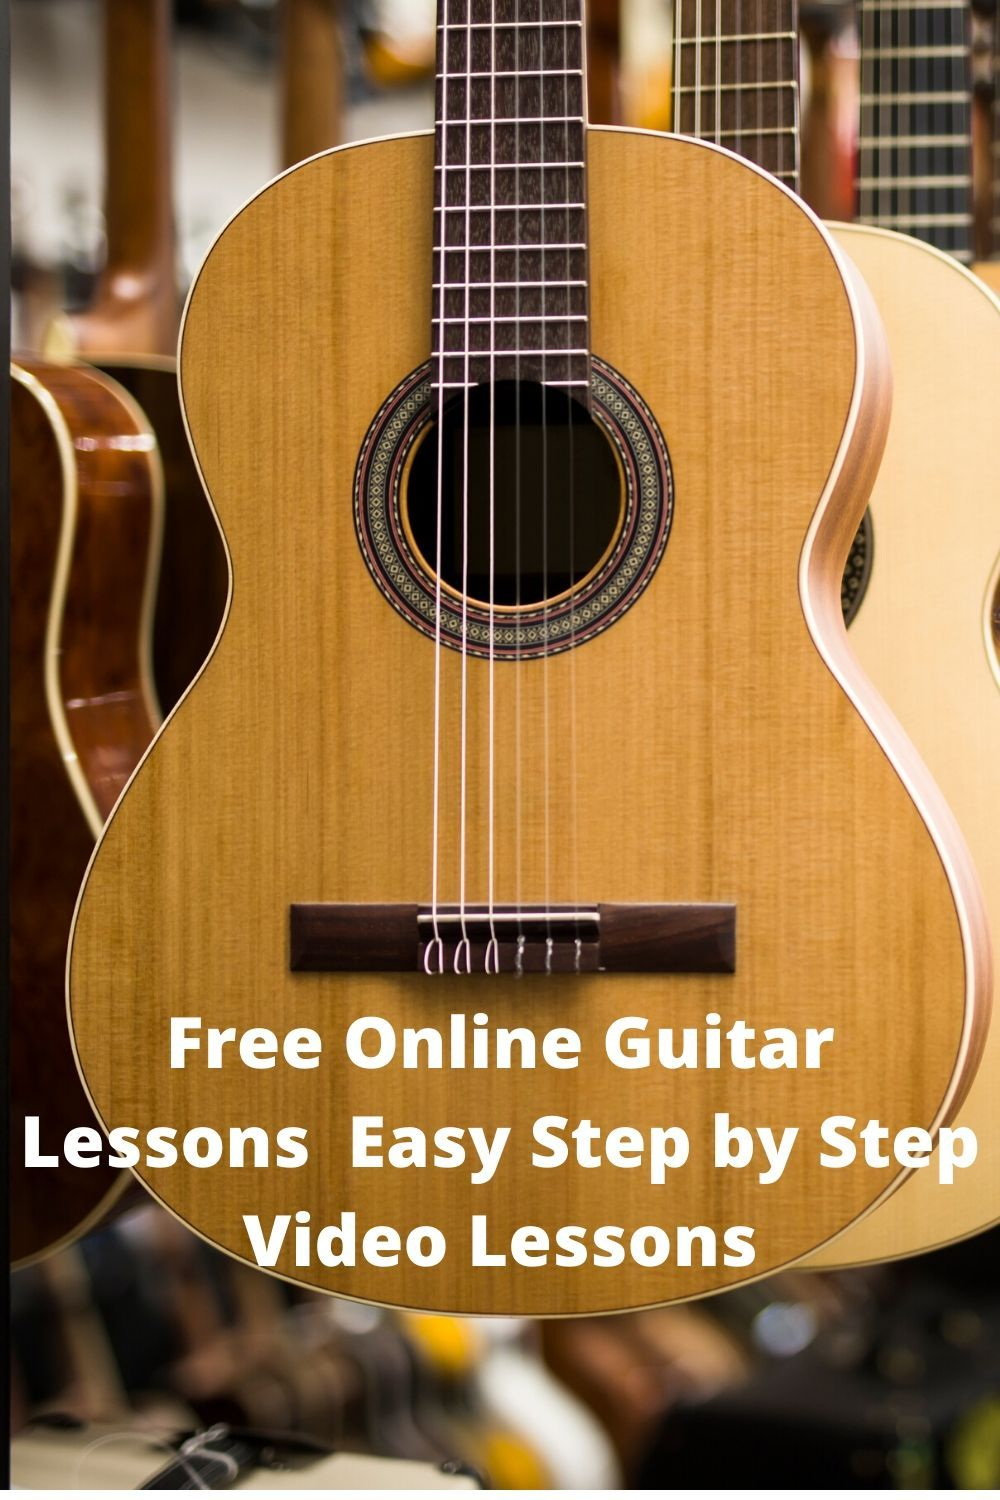 Free Online Guitar Lessons Easy StepbyStep Video